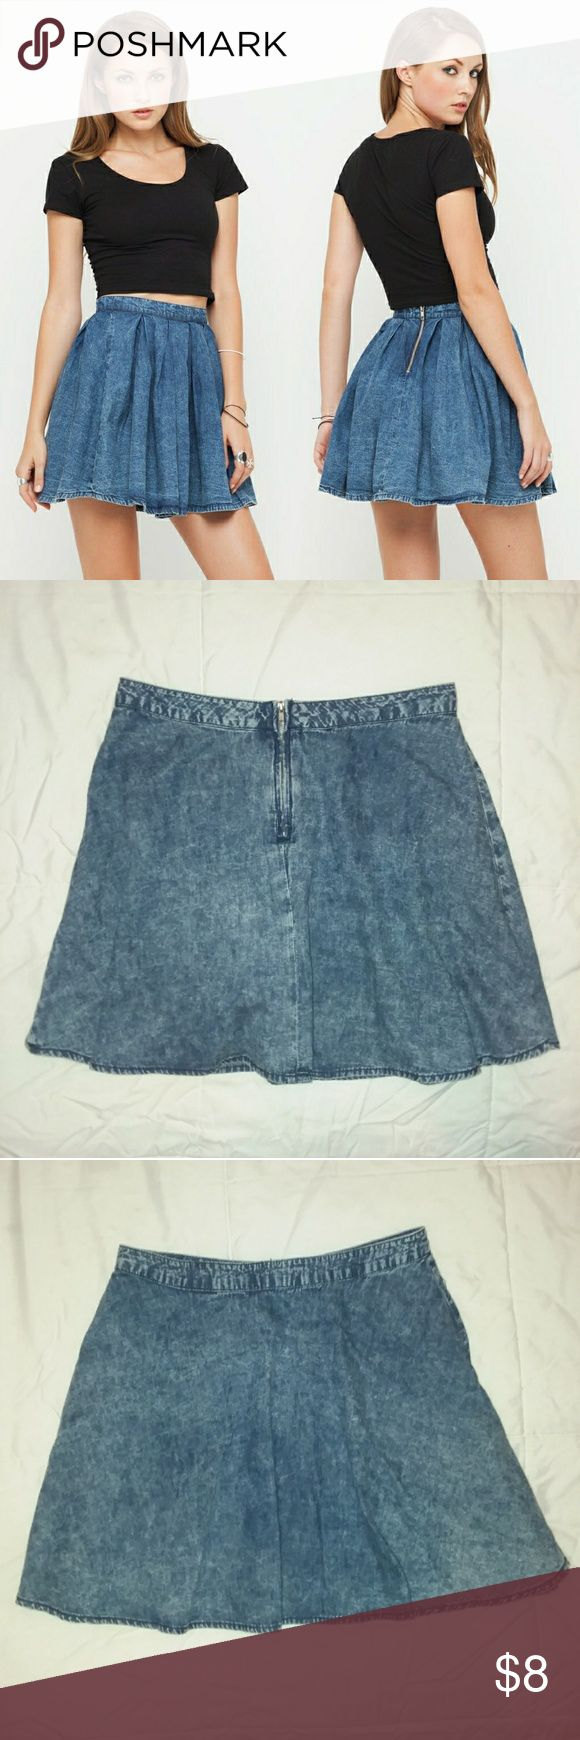 F21 Acid Denim Skater Skirt So soft and light, perfect for any season. Layer over thick tights with boots for a cute holiday look. Forever 21 Skirts Circle & Skater